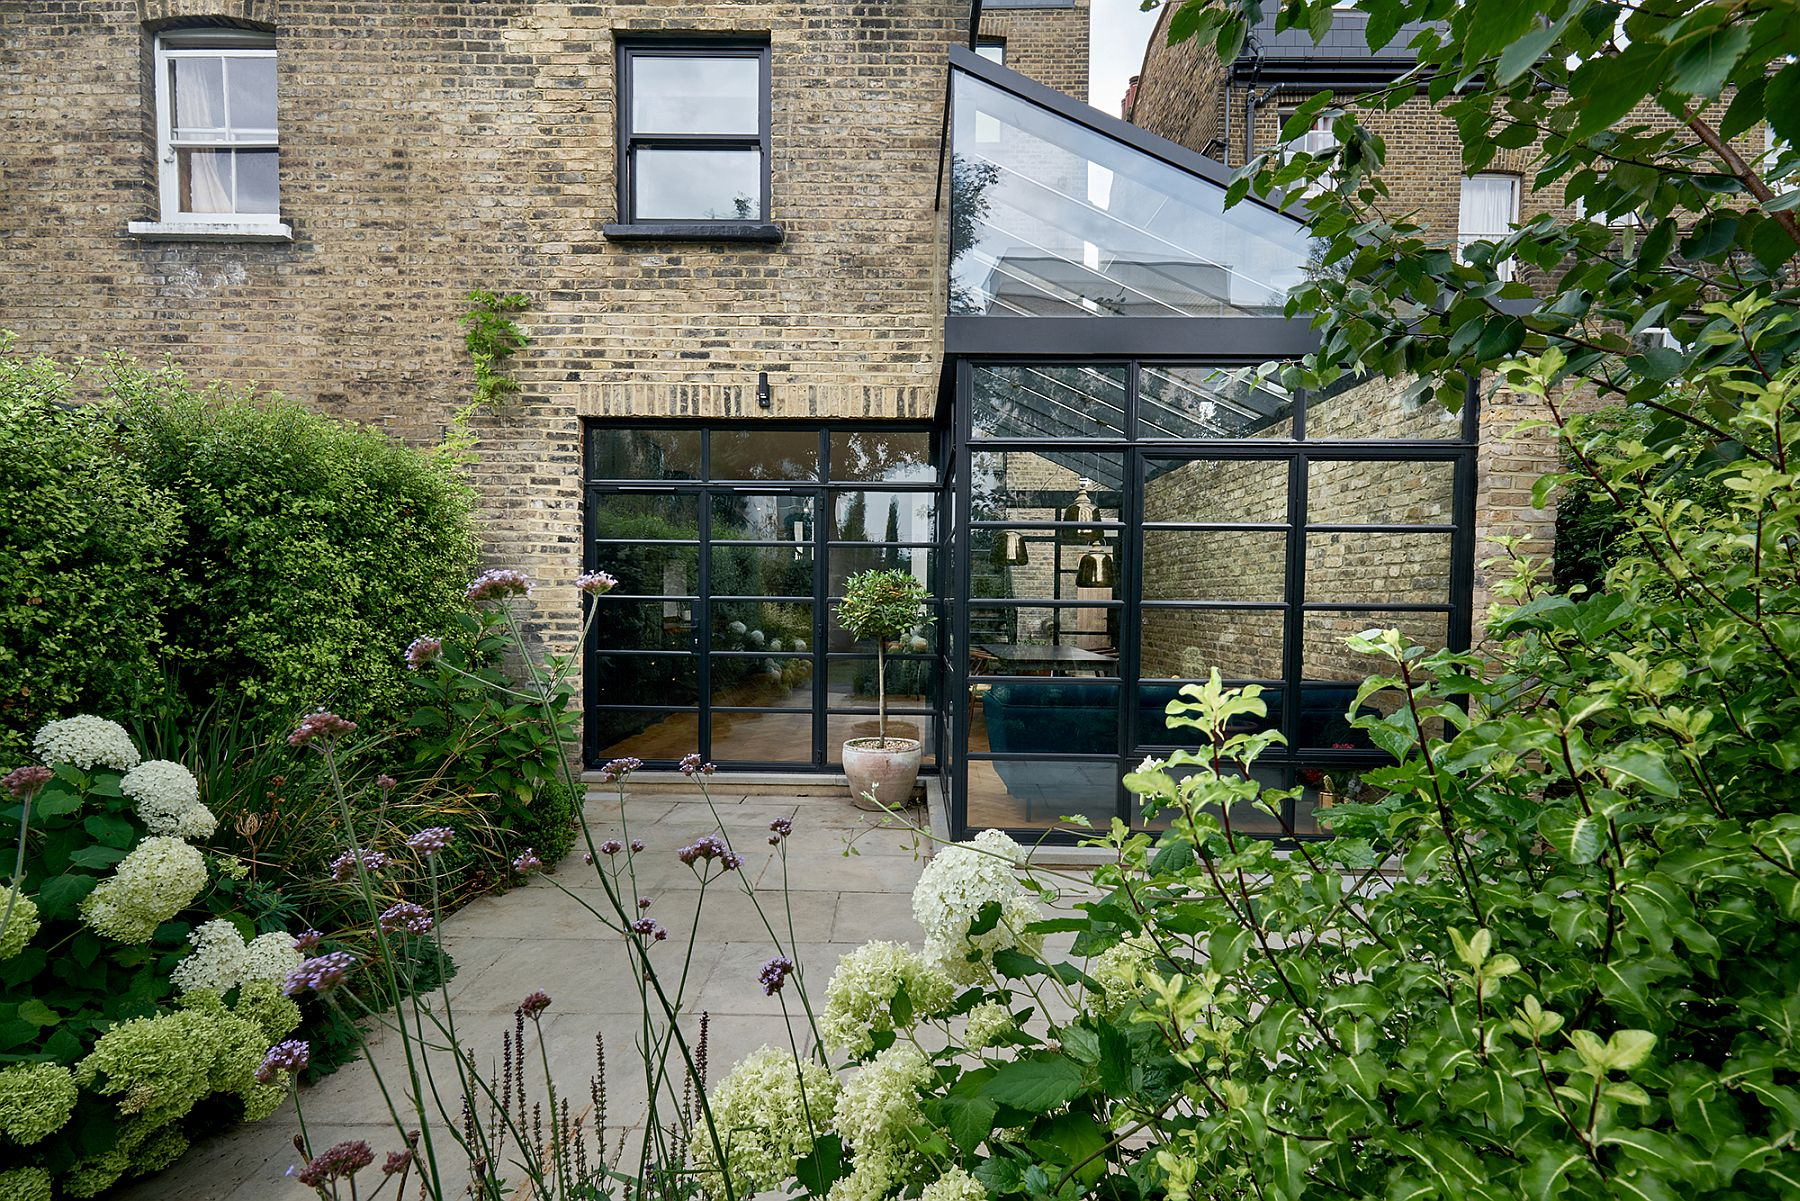 Terrace Kitchen Garden Modern Extension Using Crittall Windows Refreshes Victorian